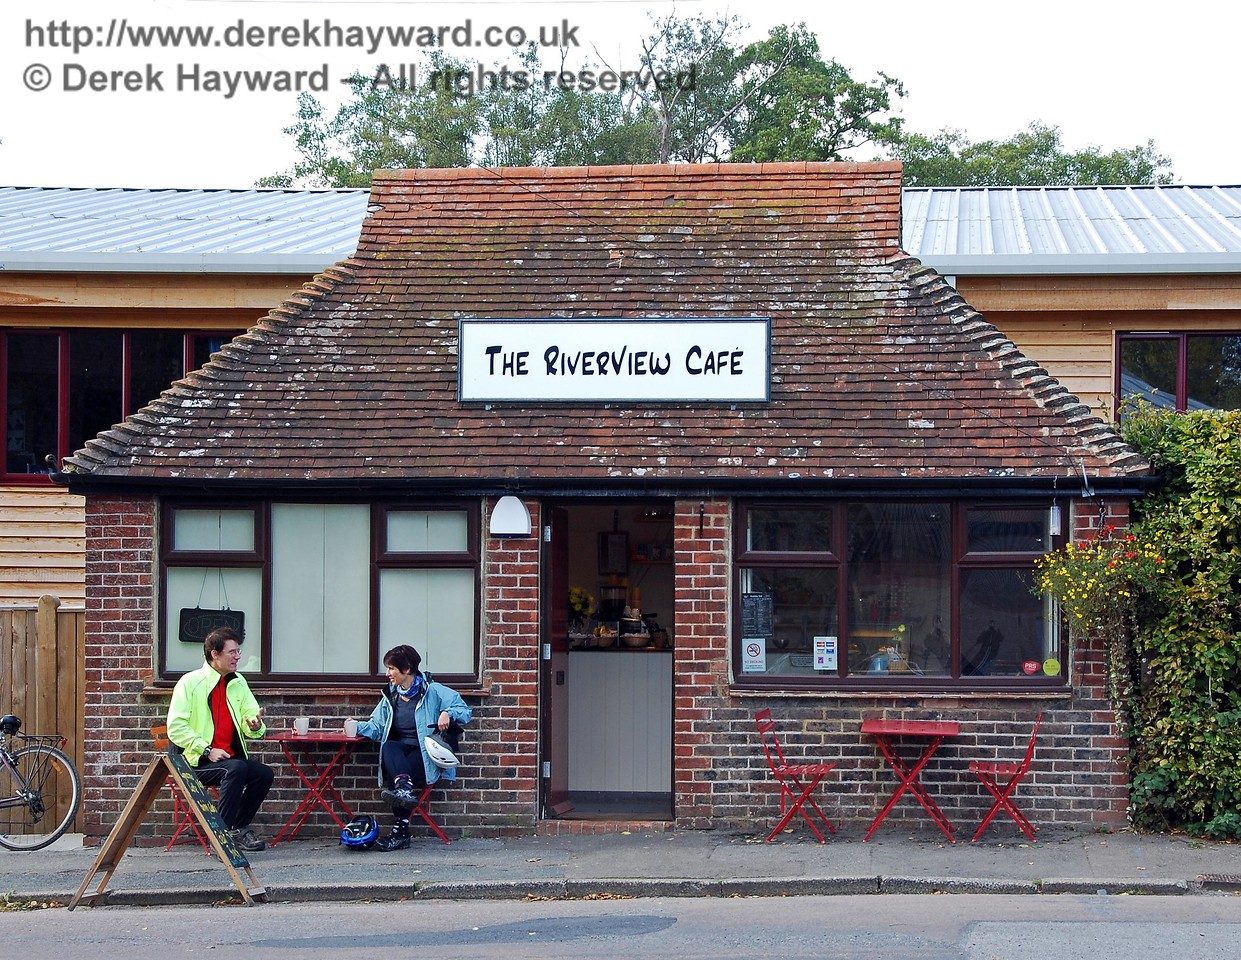 Enthusiasts who like disused stations will not enjoy Forest Row, the area having been redeveloped. However the old coal office in the station forecourt survives as The Riverview Cafe. 18.10.2009